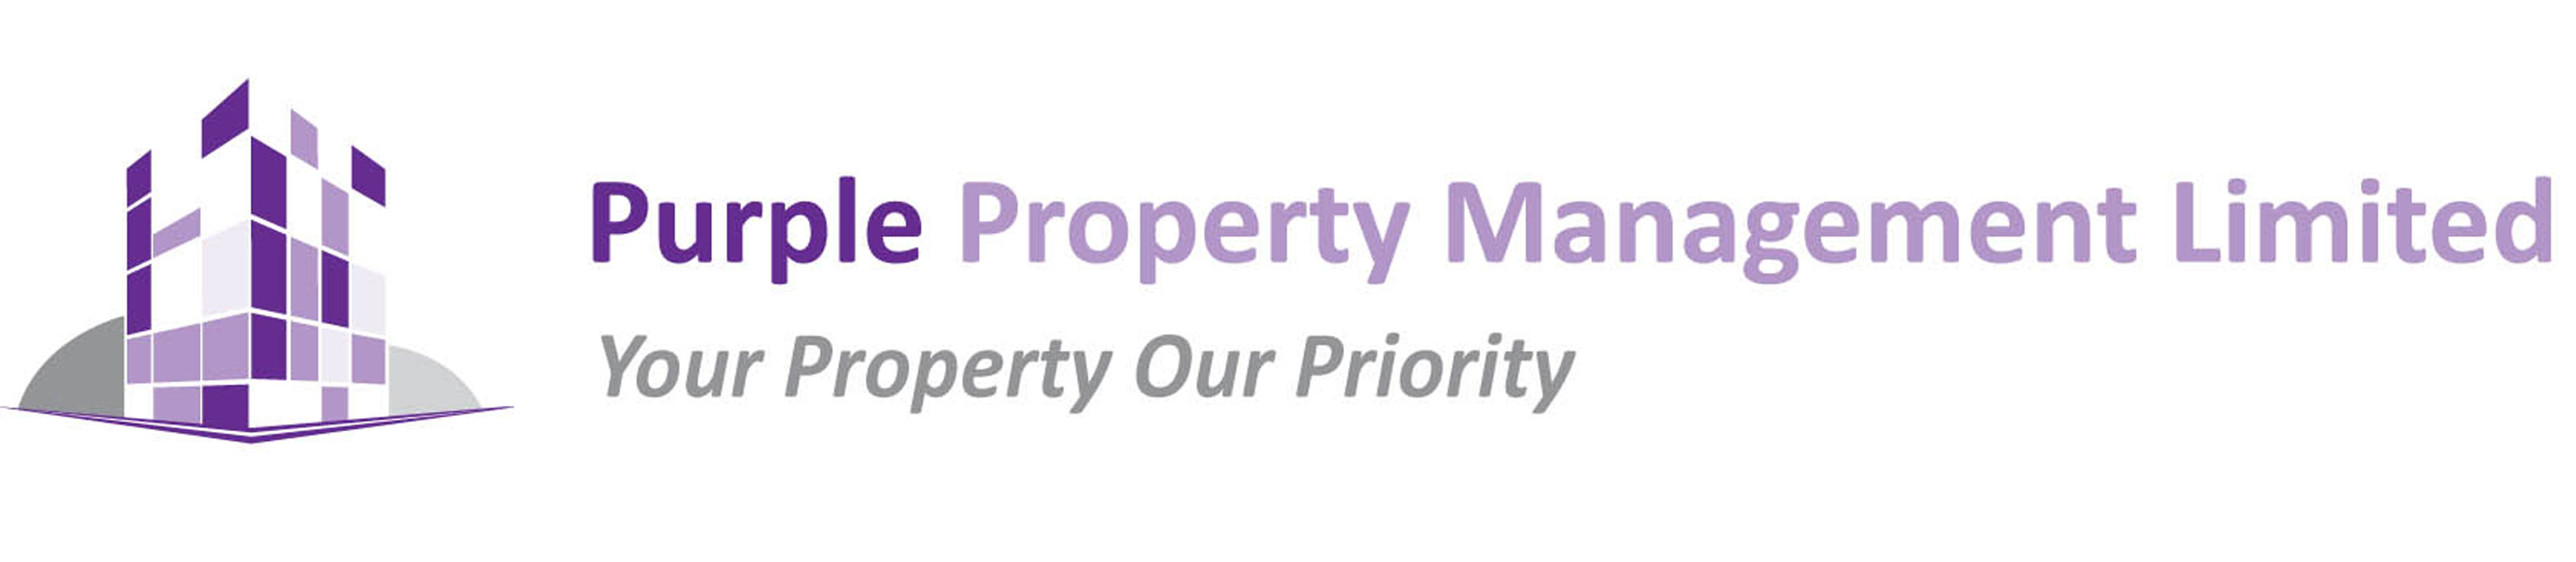 Purple Property Management Limited